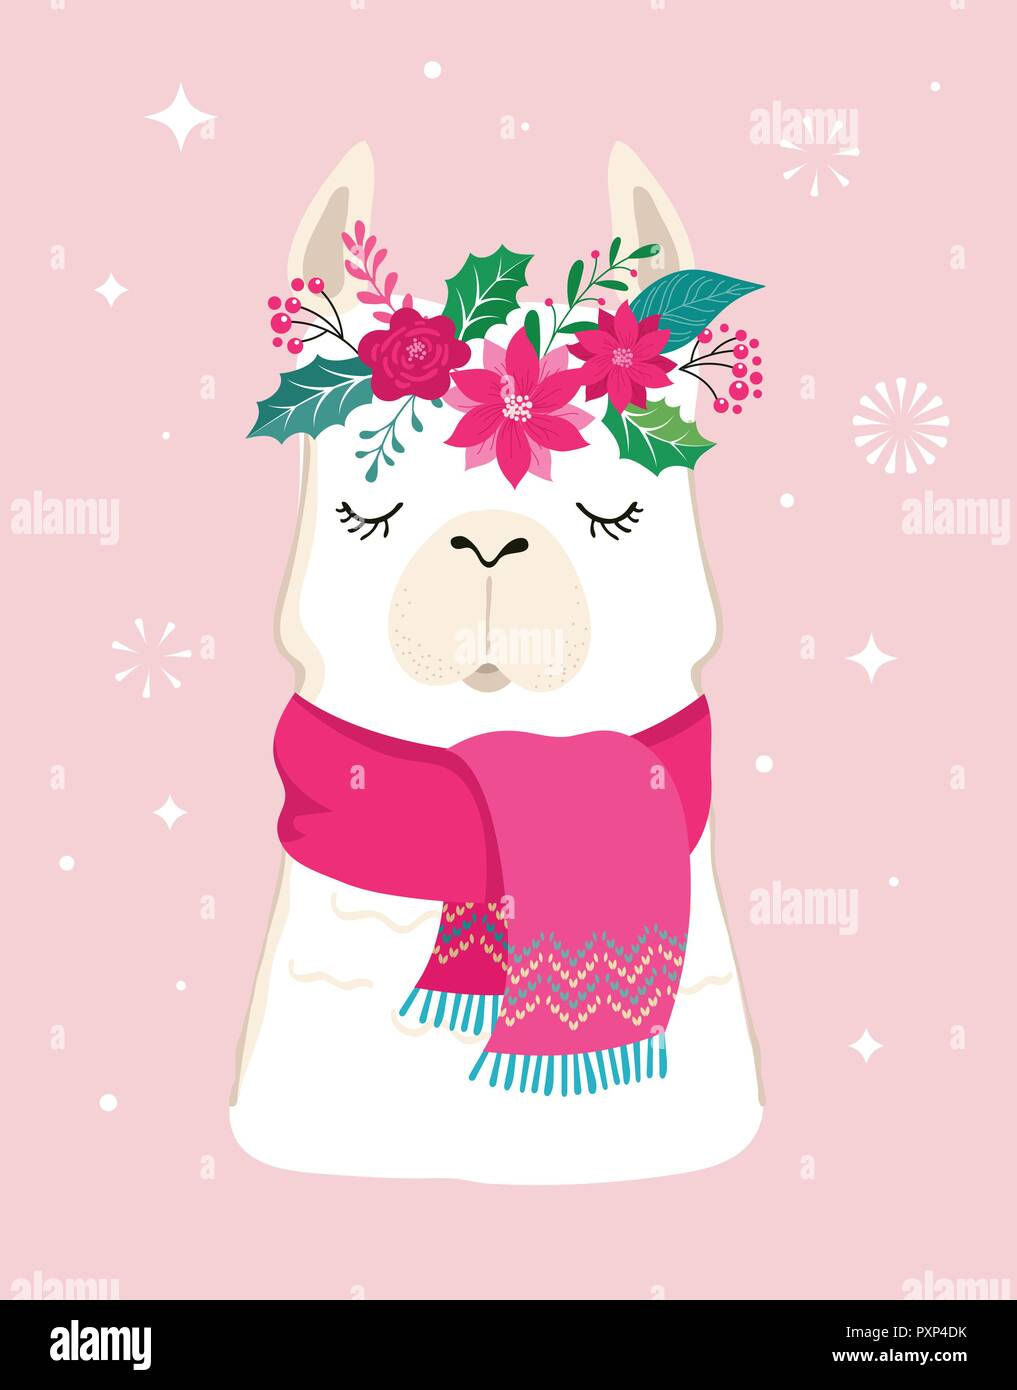 Llama Winter Illustration Cute Design For Nursery Poster Merry Christmas Birthday Greeting Card